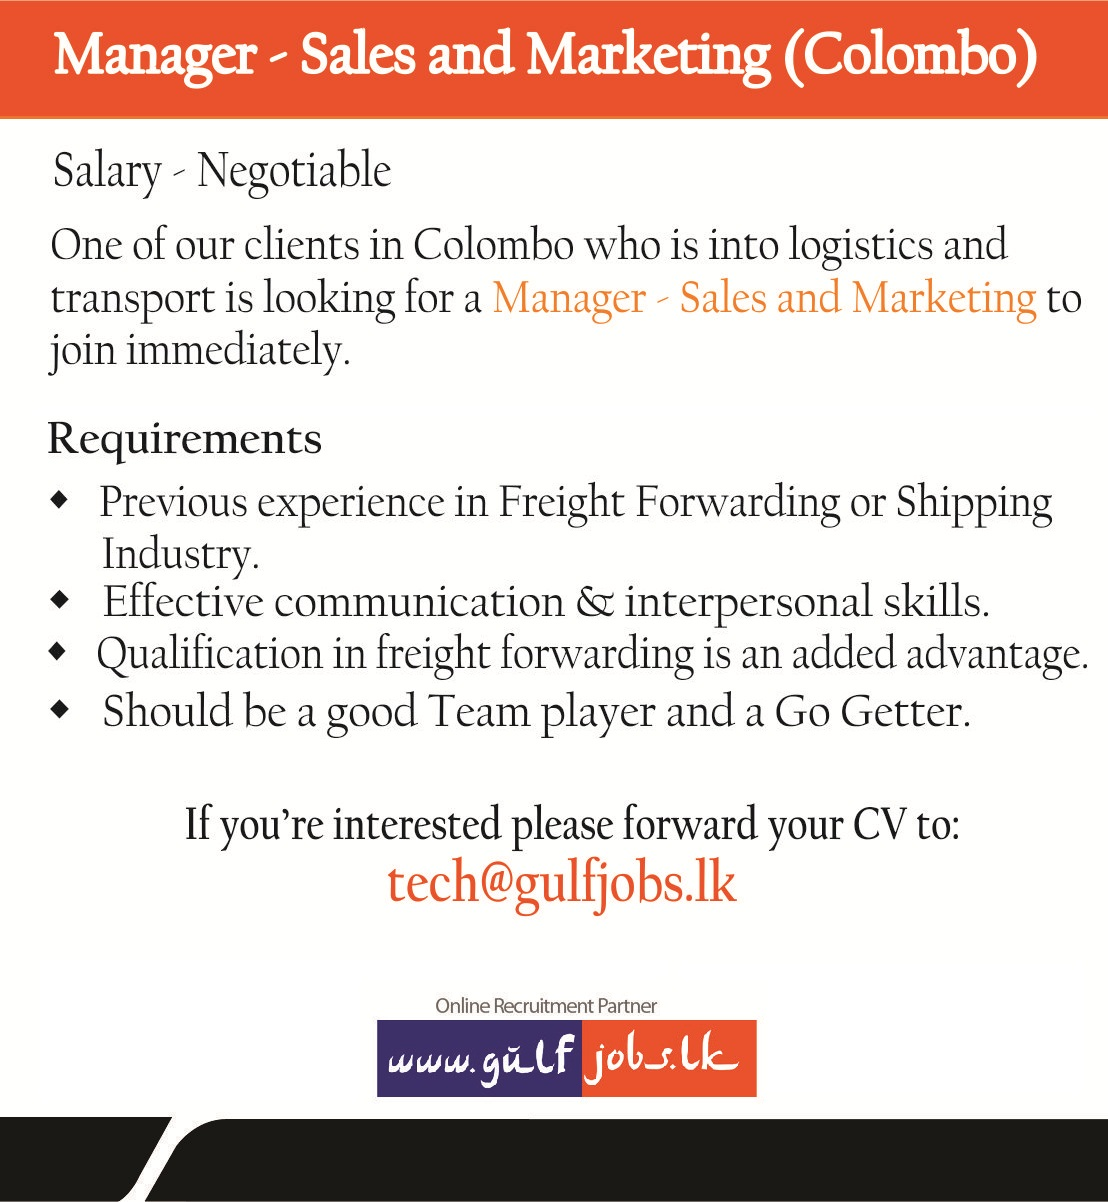 Sales and Marketing Manager - Colombo Job Vacancy in Sri Lanka